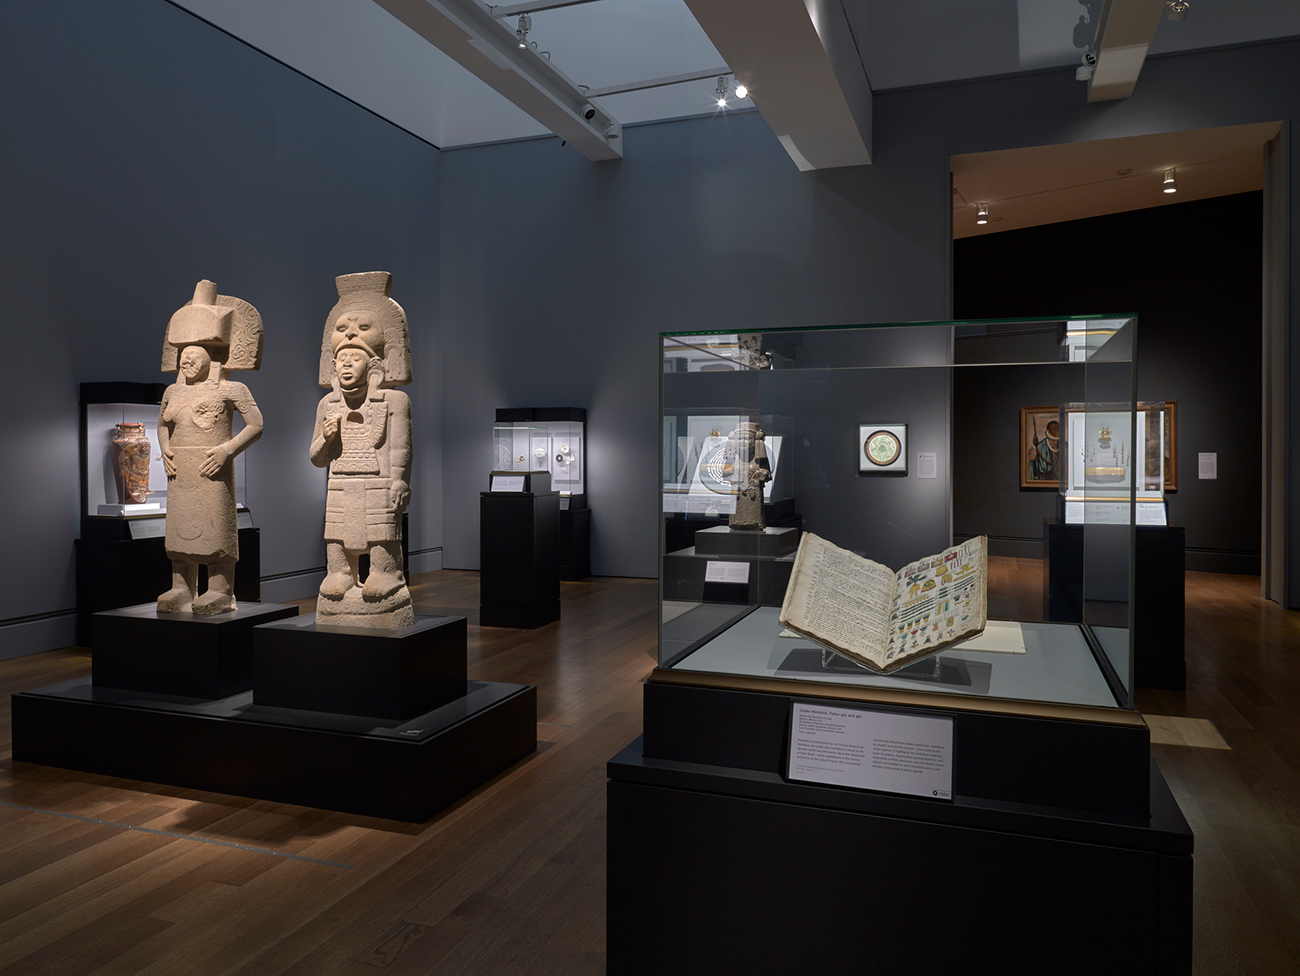 Installation view of Golden Kingdoms featuring an open codex and two stone sculptures of people in ritual regalia.